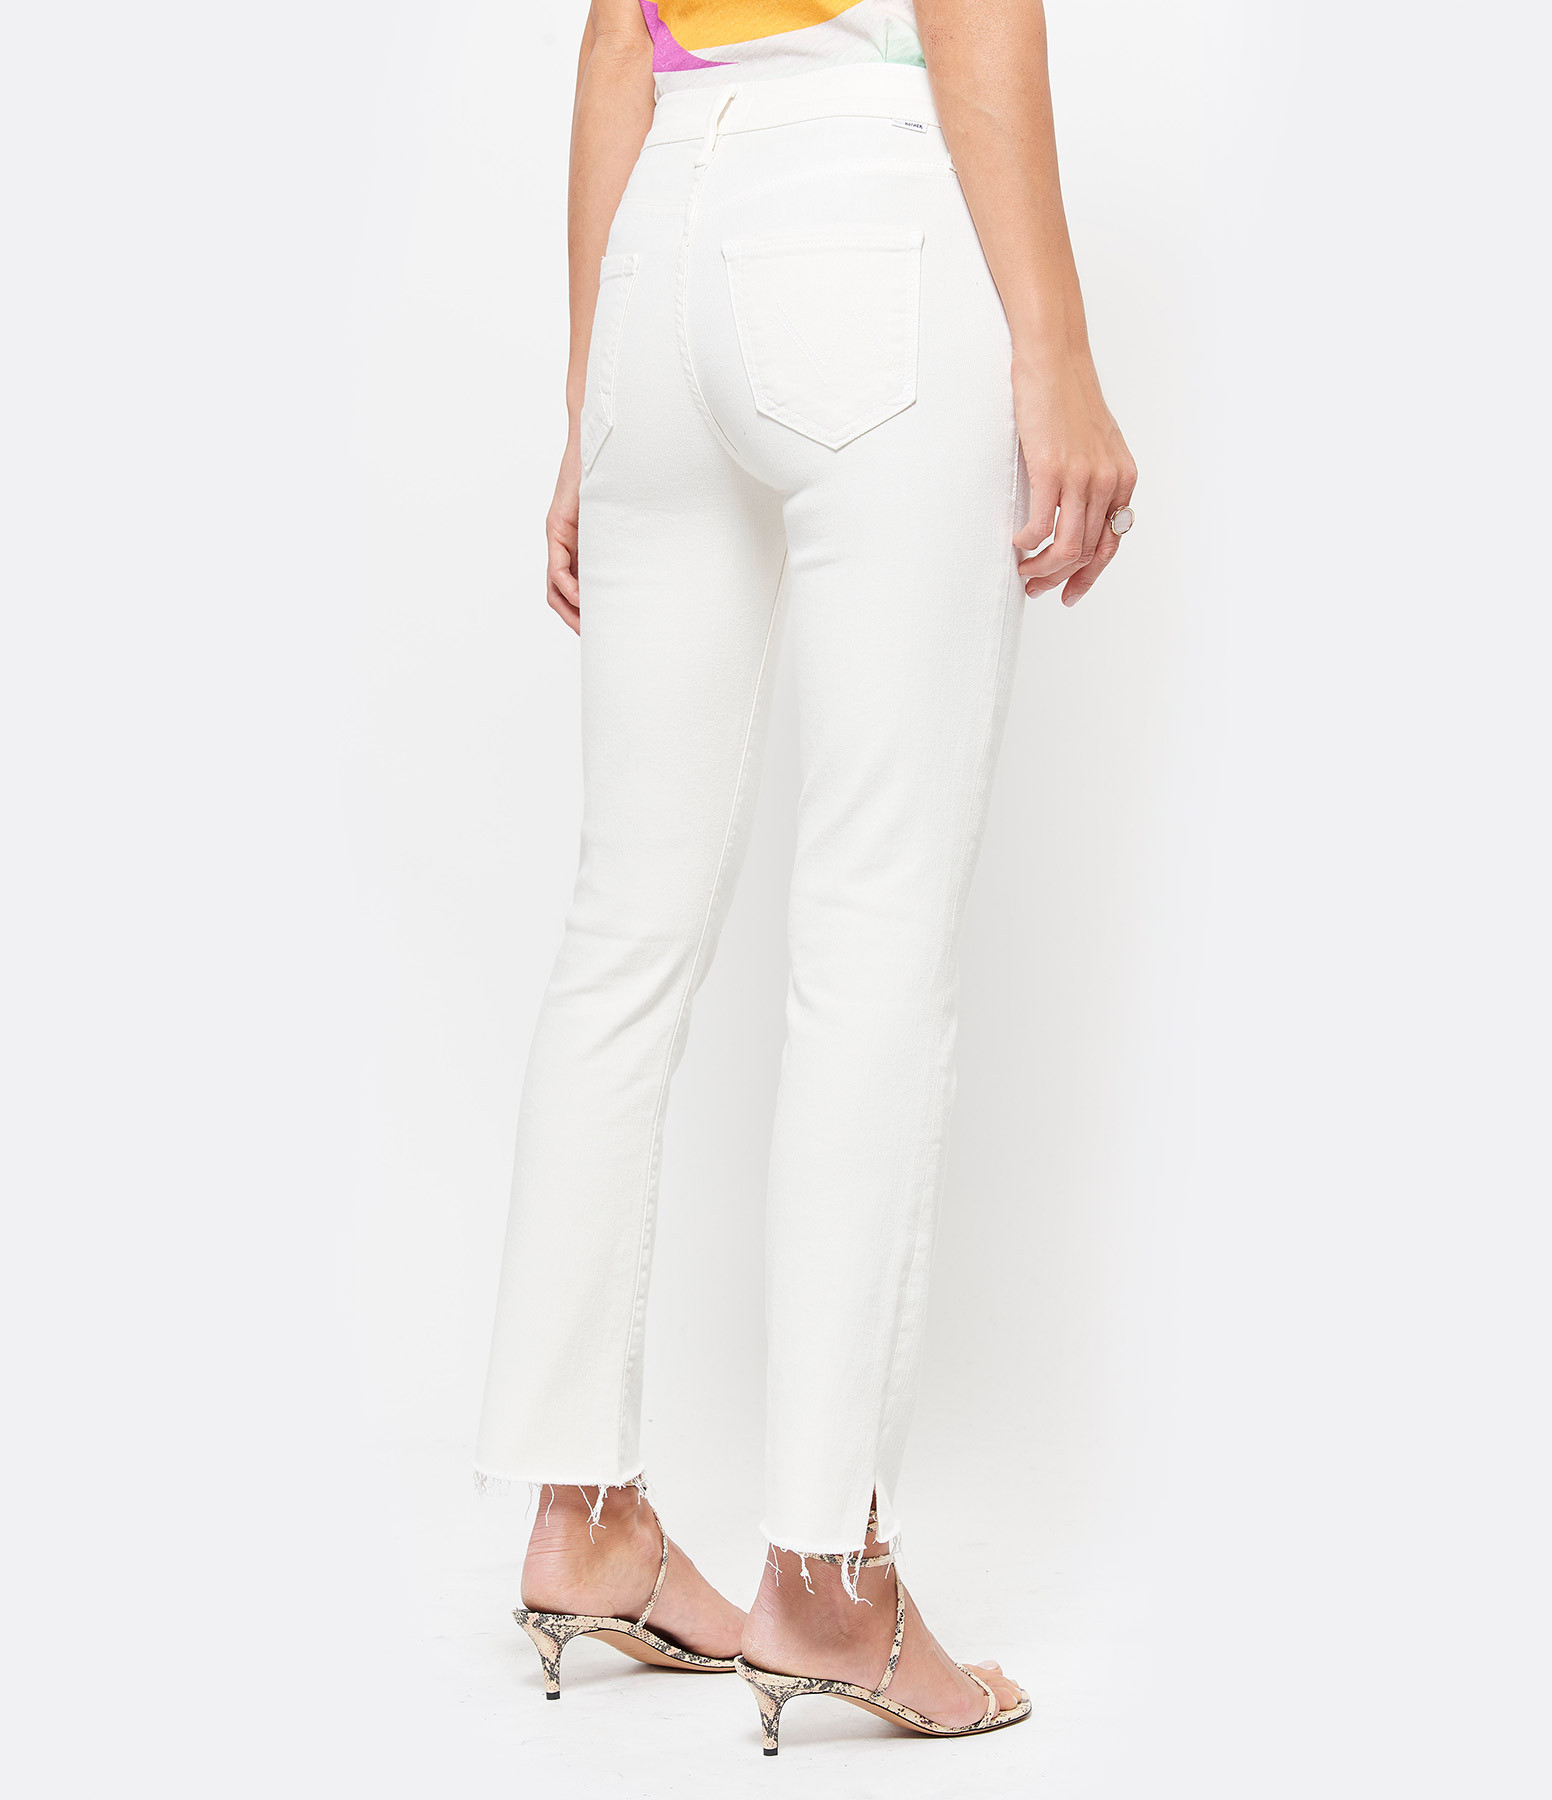 MOTHER - Jean The Rascal Ankle Snippet Cream Puff